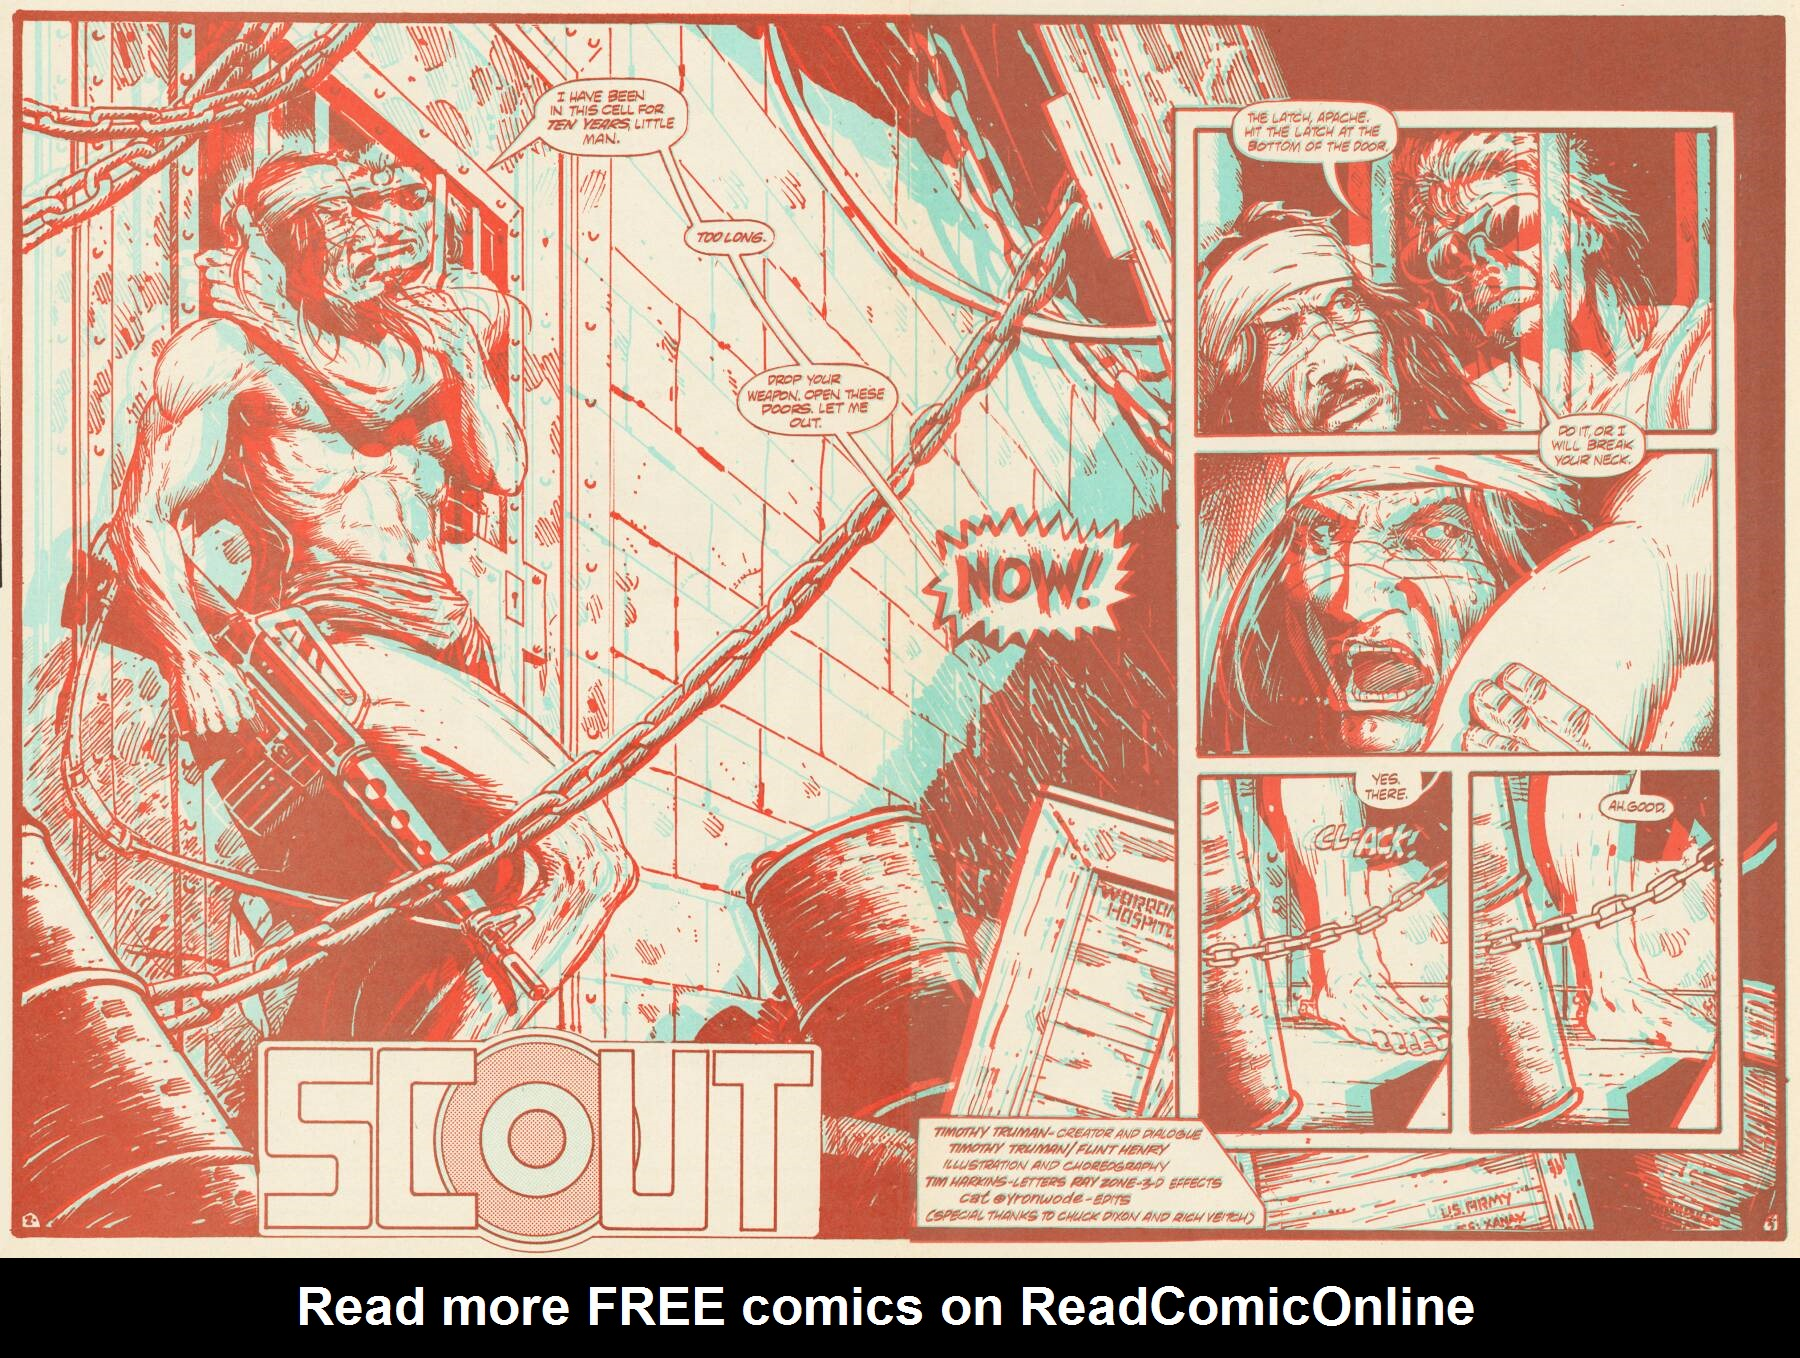 Read online Scout comic -  Issue #16 - 4